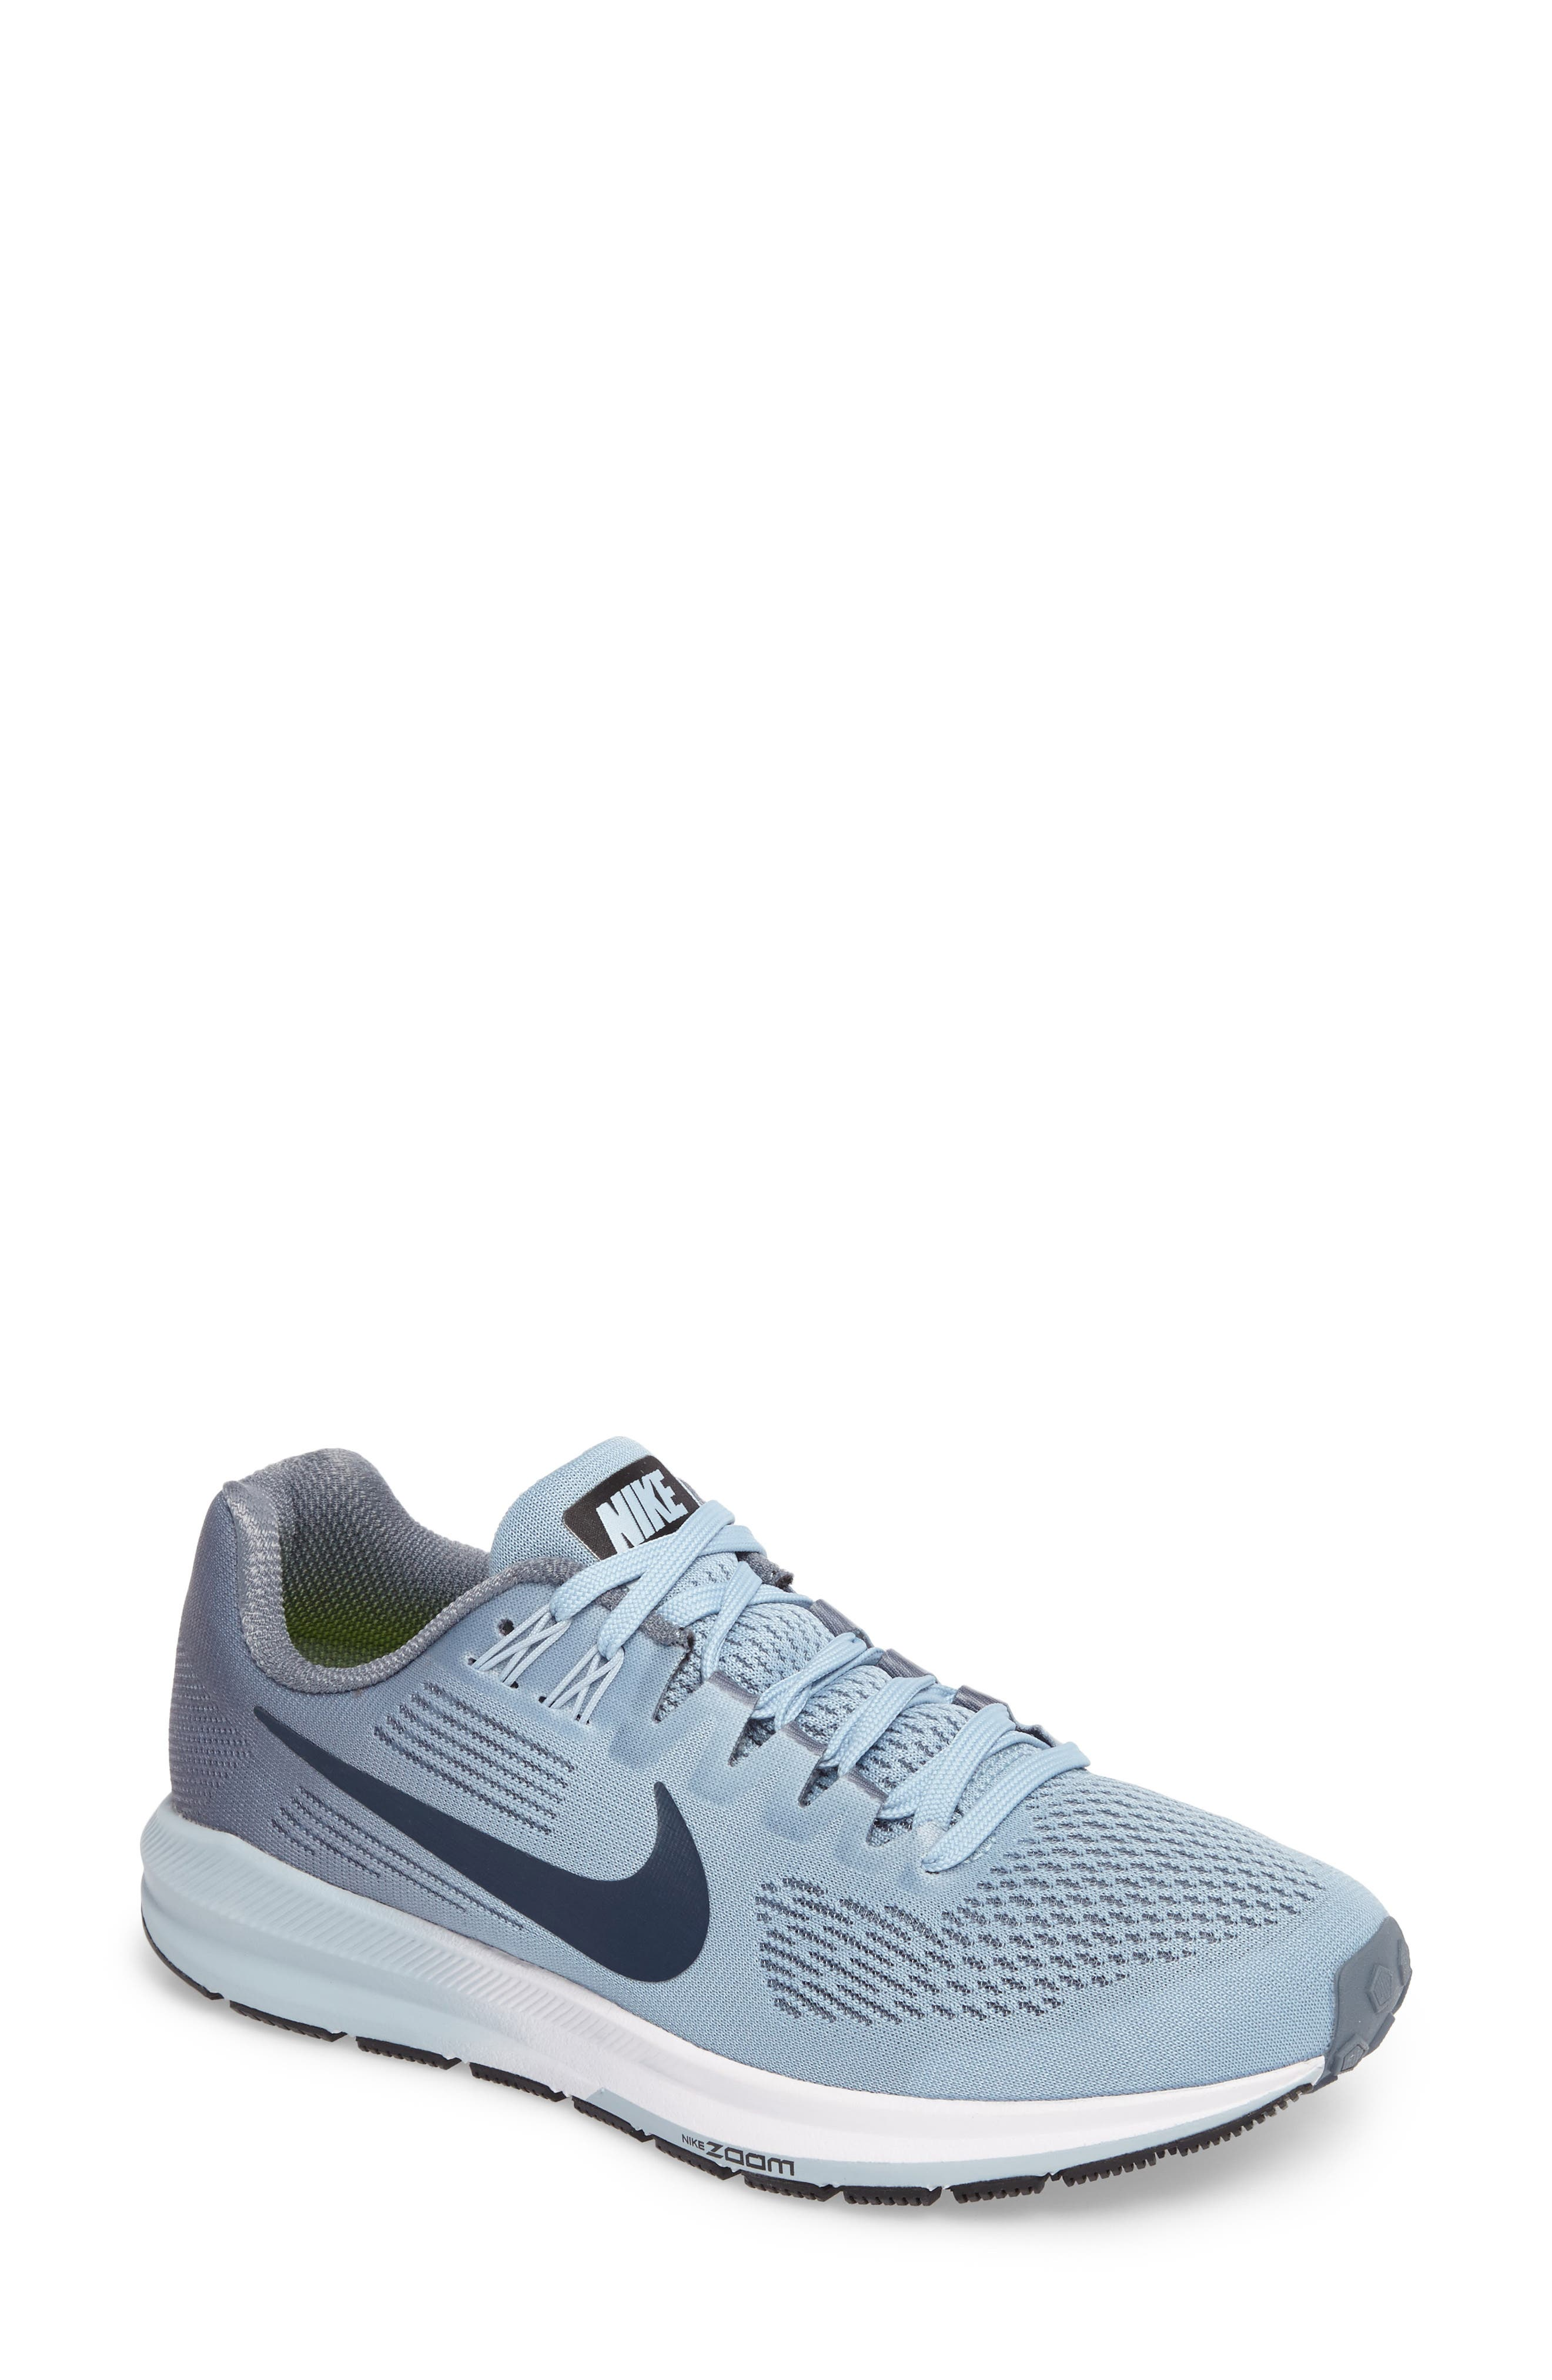 Nike Air Zoom Structure 21 Running Shoe (Women)